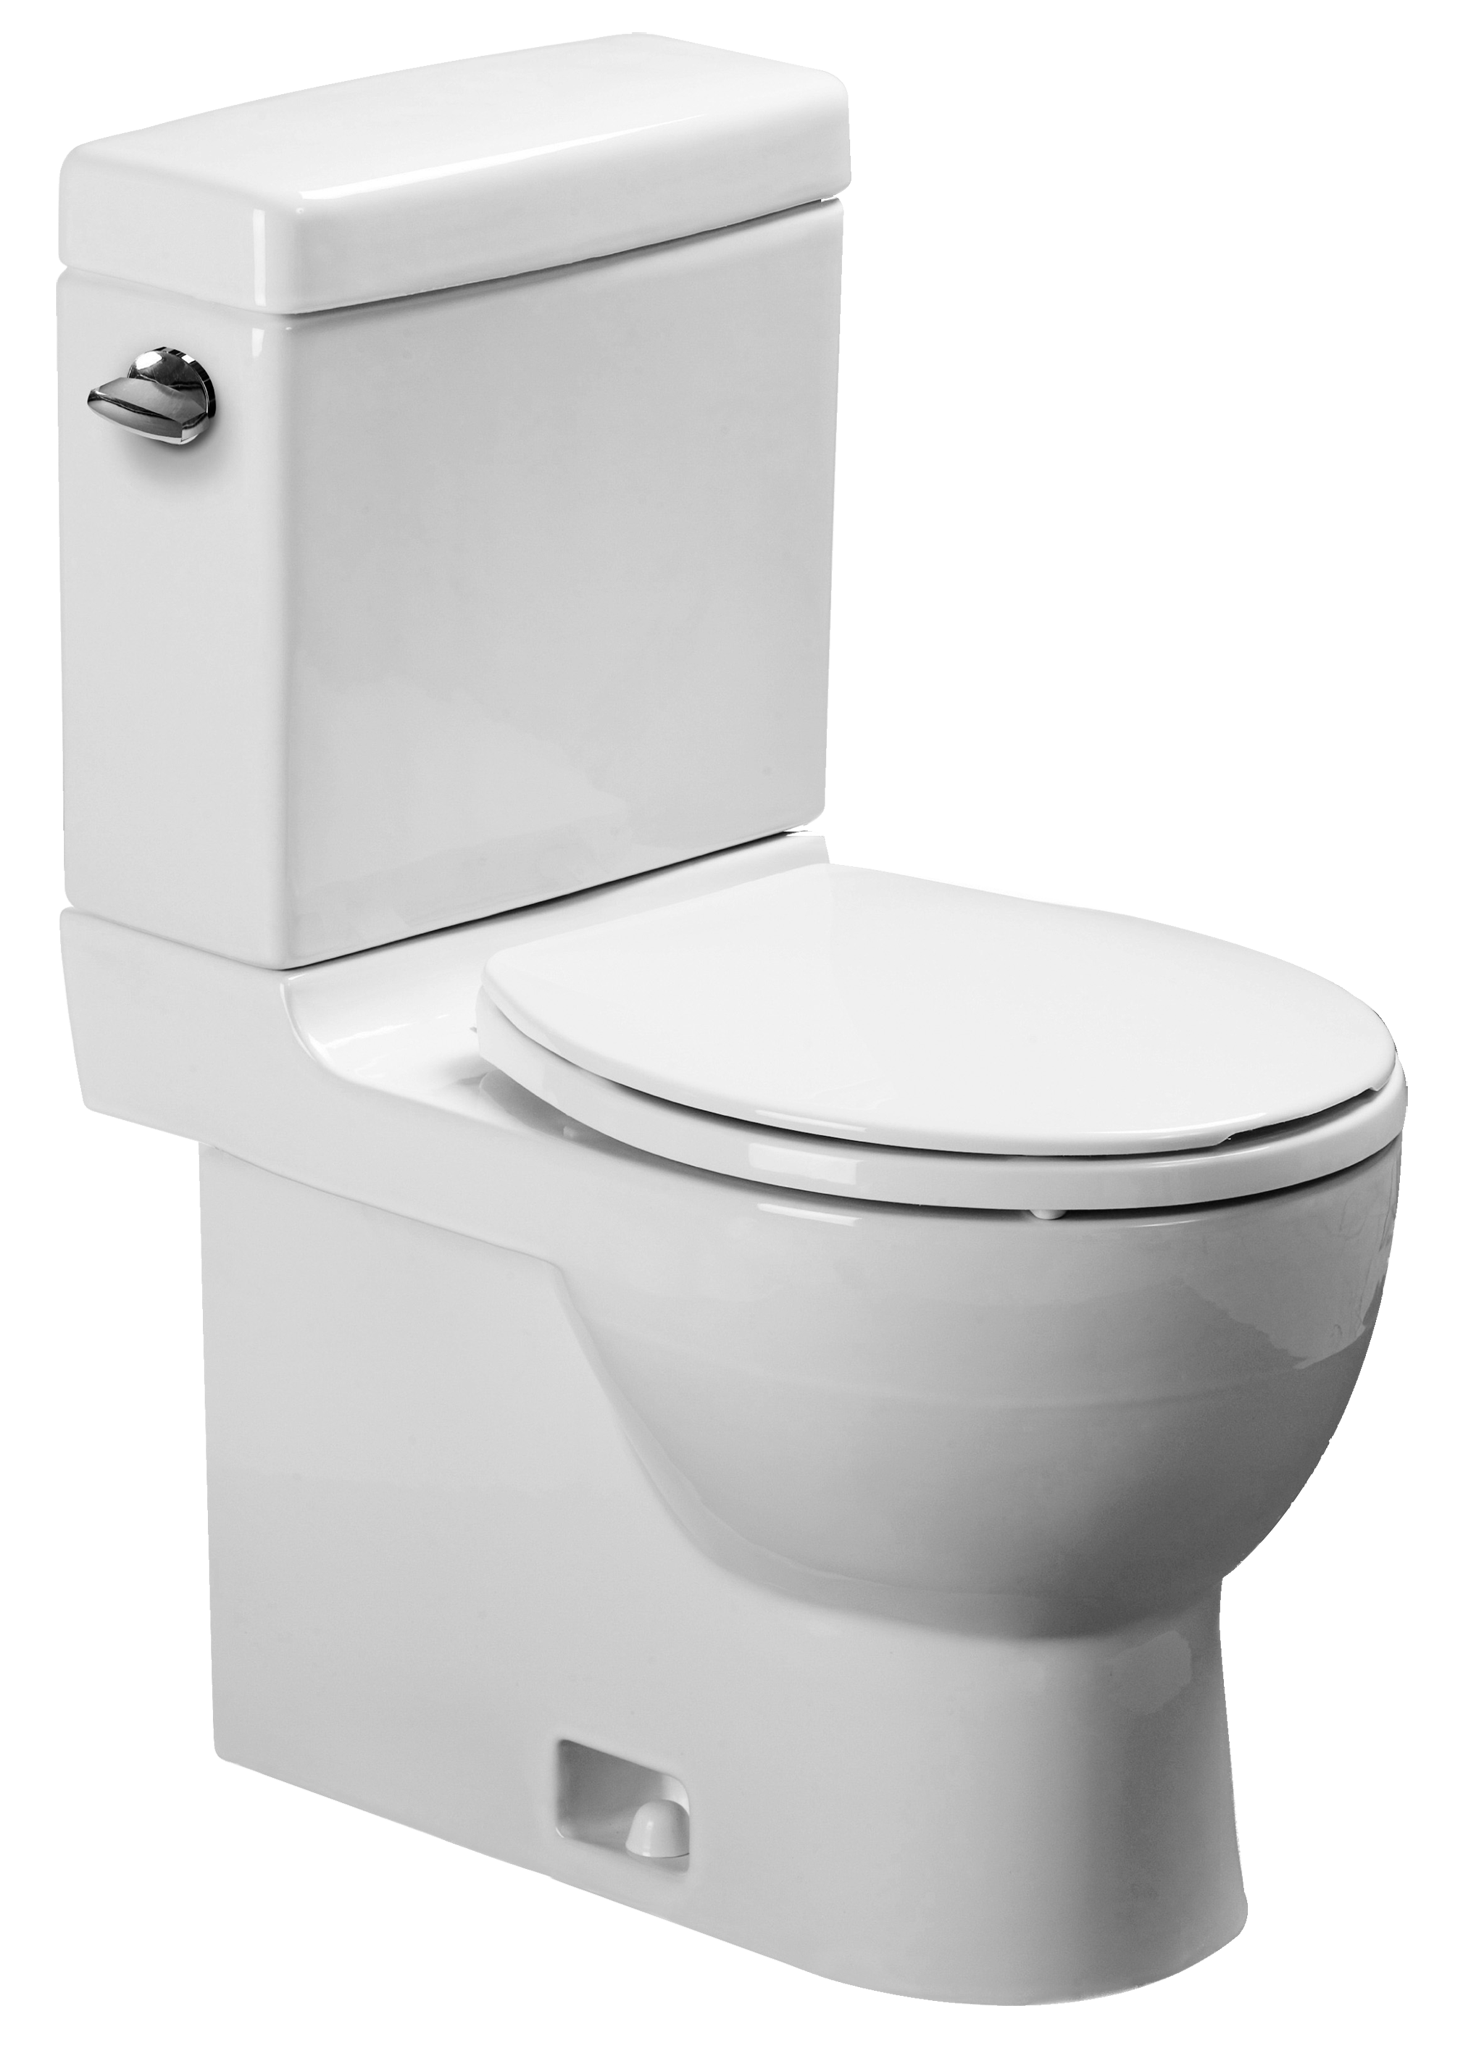 banner free download Toilet PNG Image